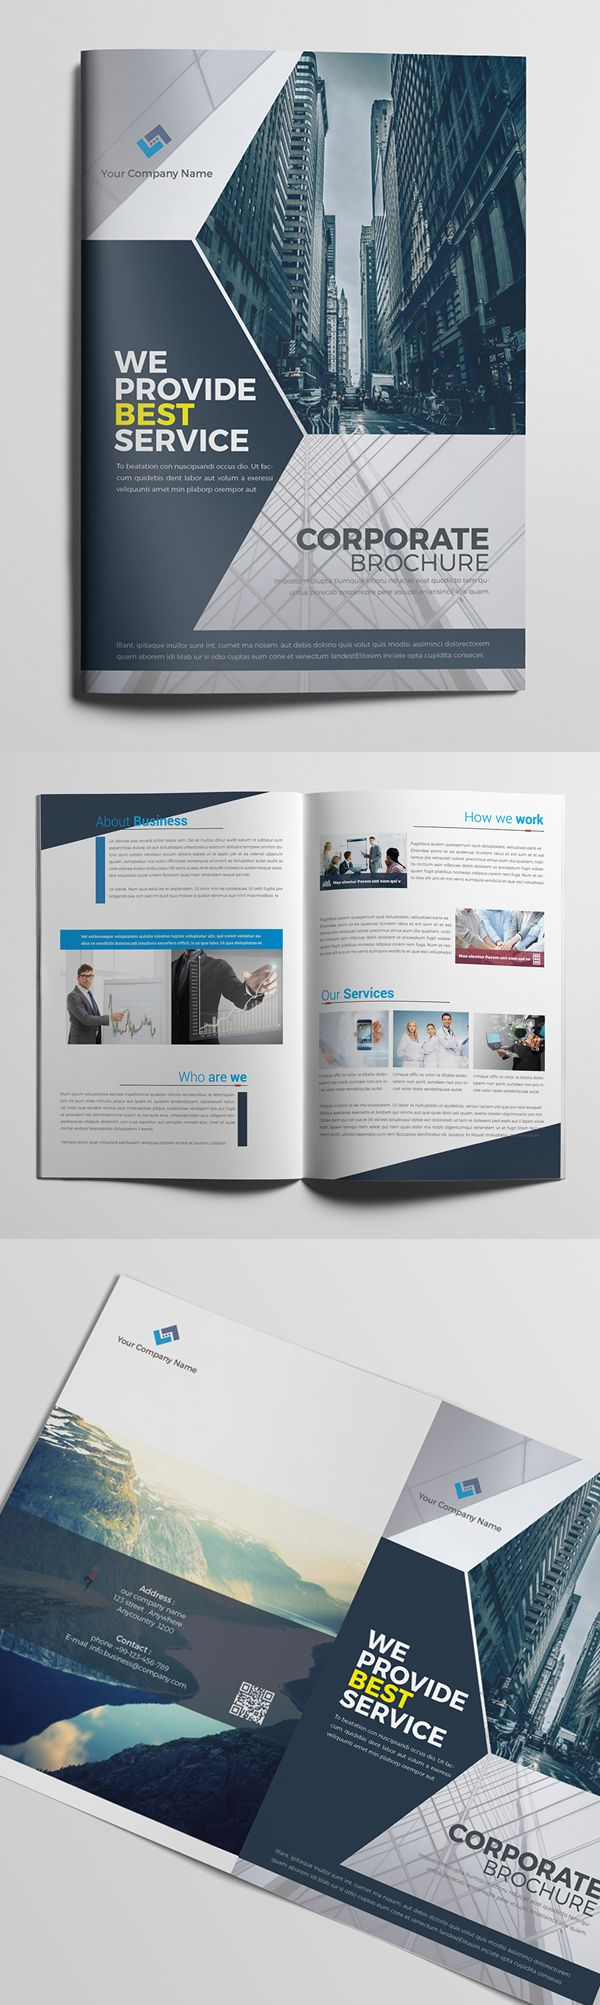 Corporate Brochure / Catalog Design                              …